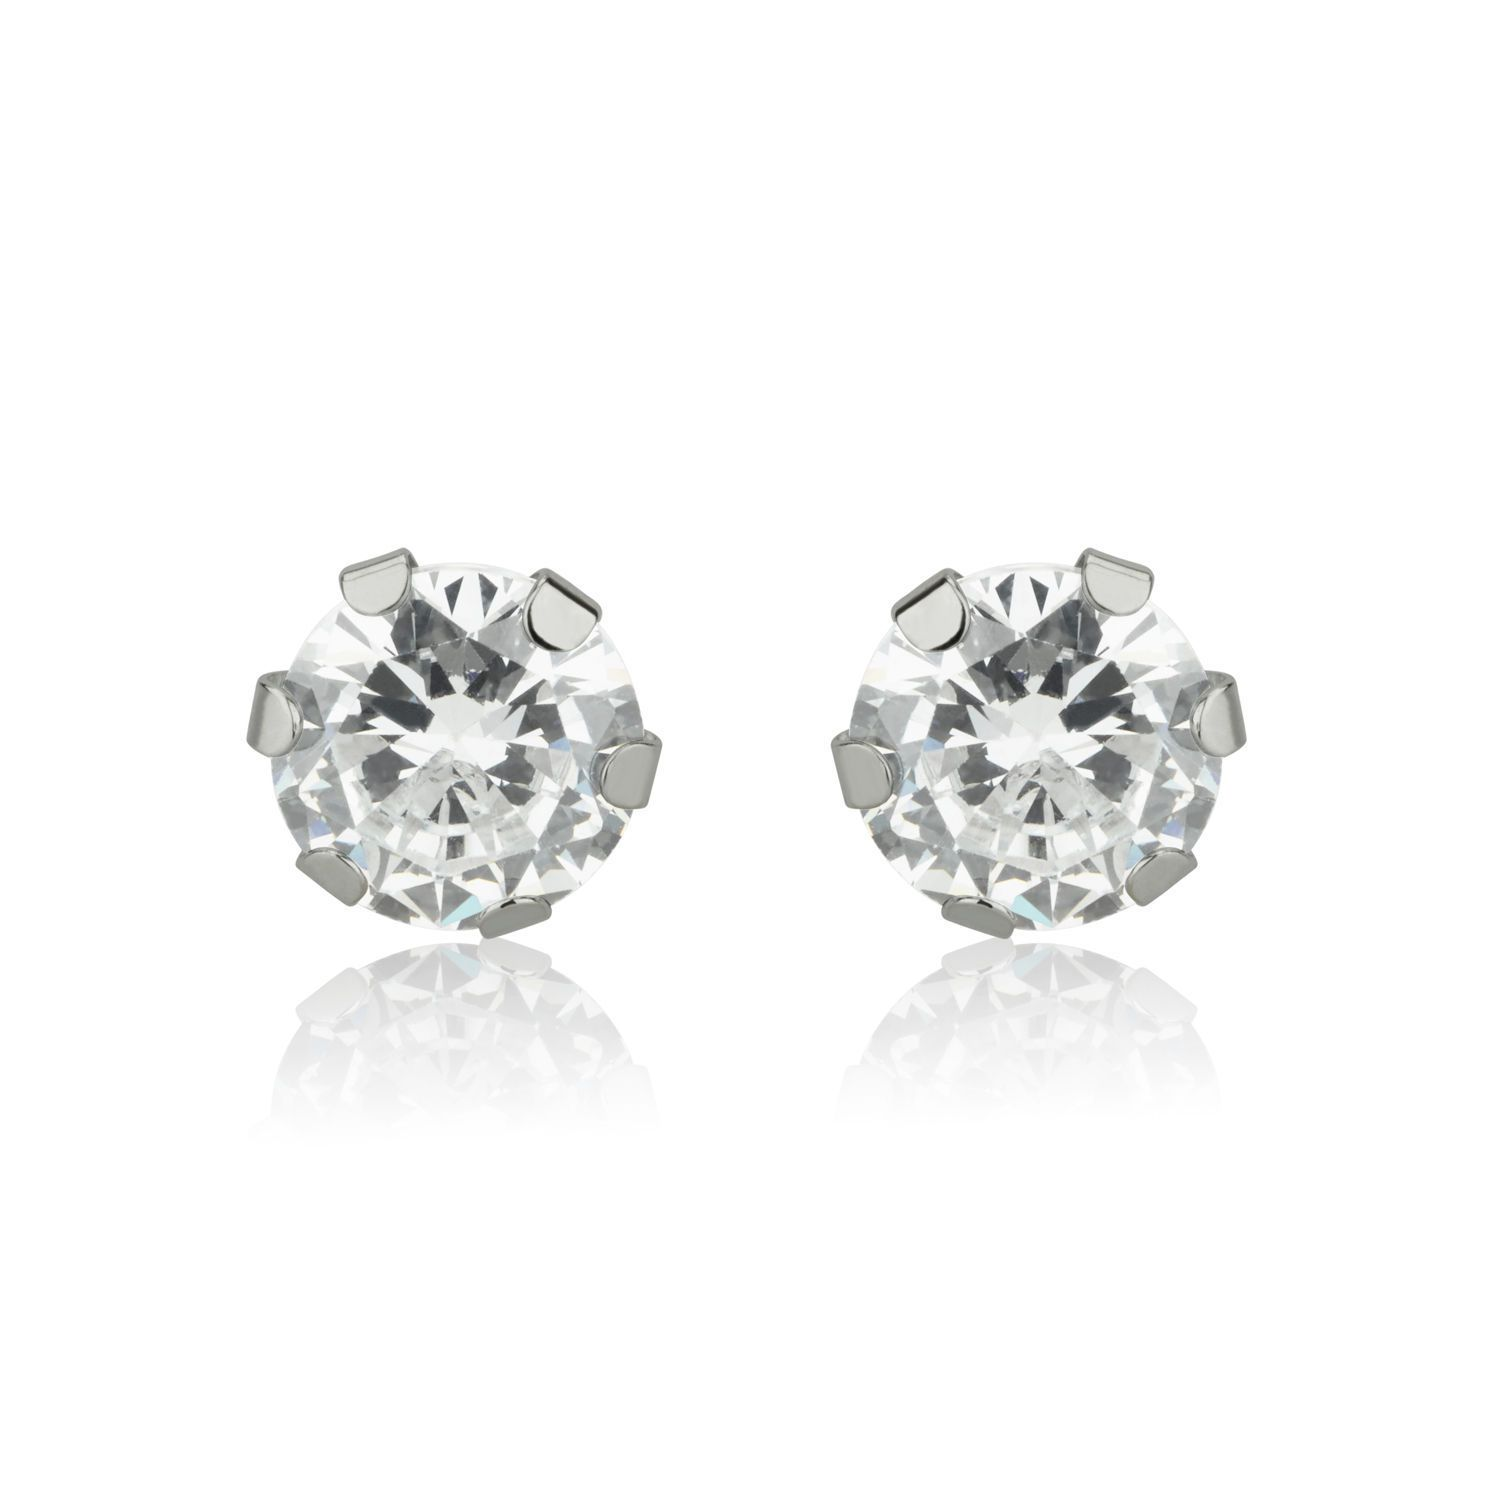 Beautiful stud Earrings made of 14K White Gold The earrings are made